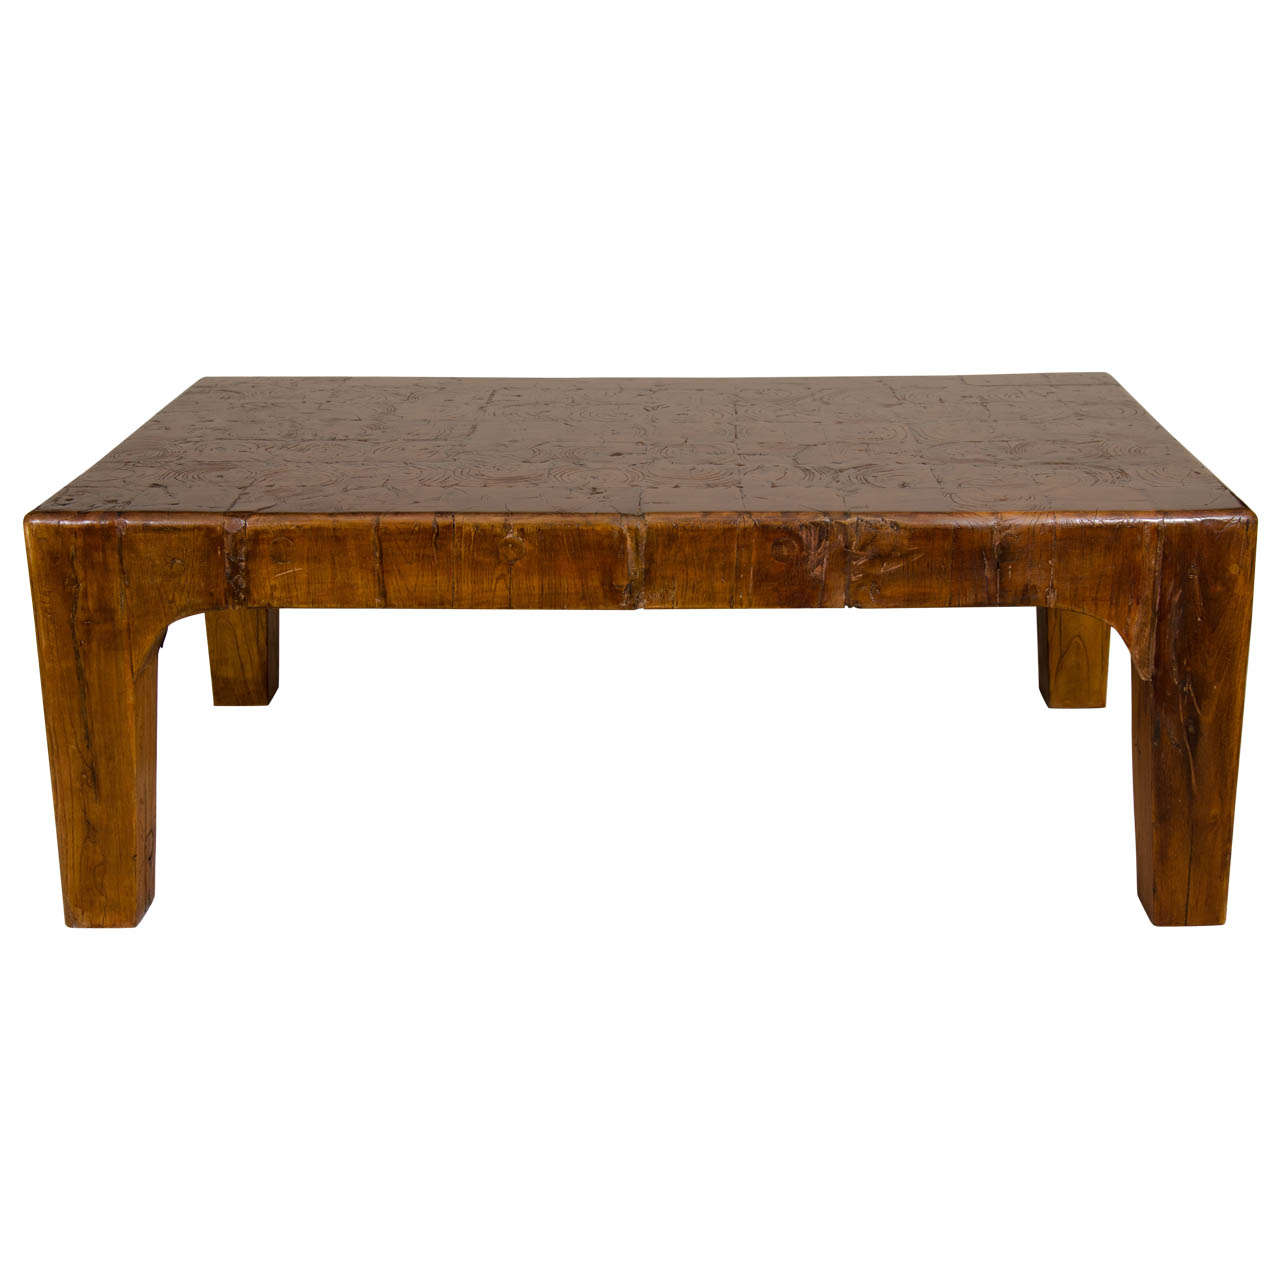 Solid Wood Block Coffee Table: A Mid Century Solid Wood Block Rectangular Shaped Coffee